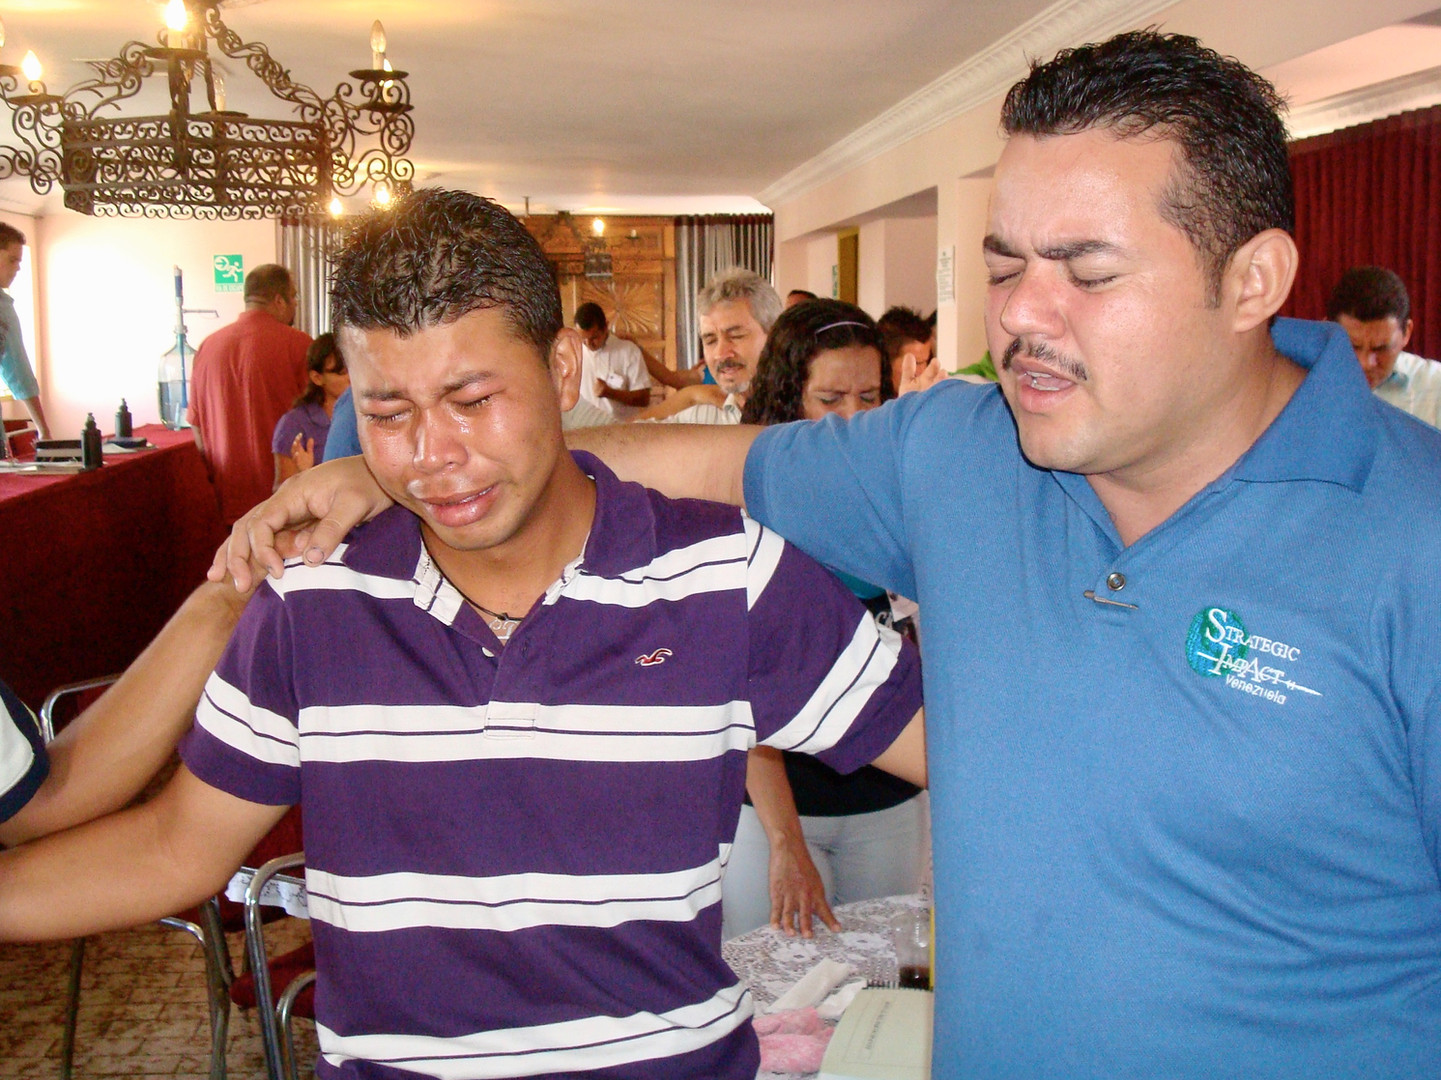 Praying with others in Barquisimeto, Venezuela